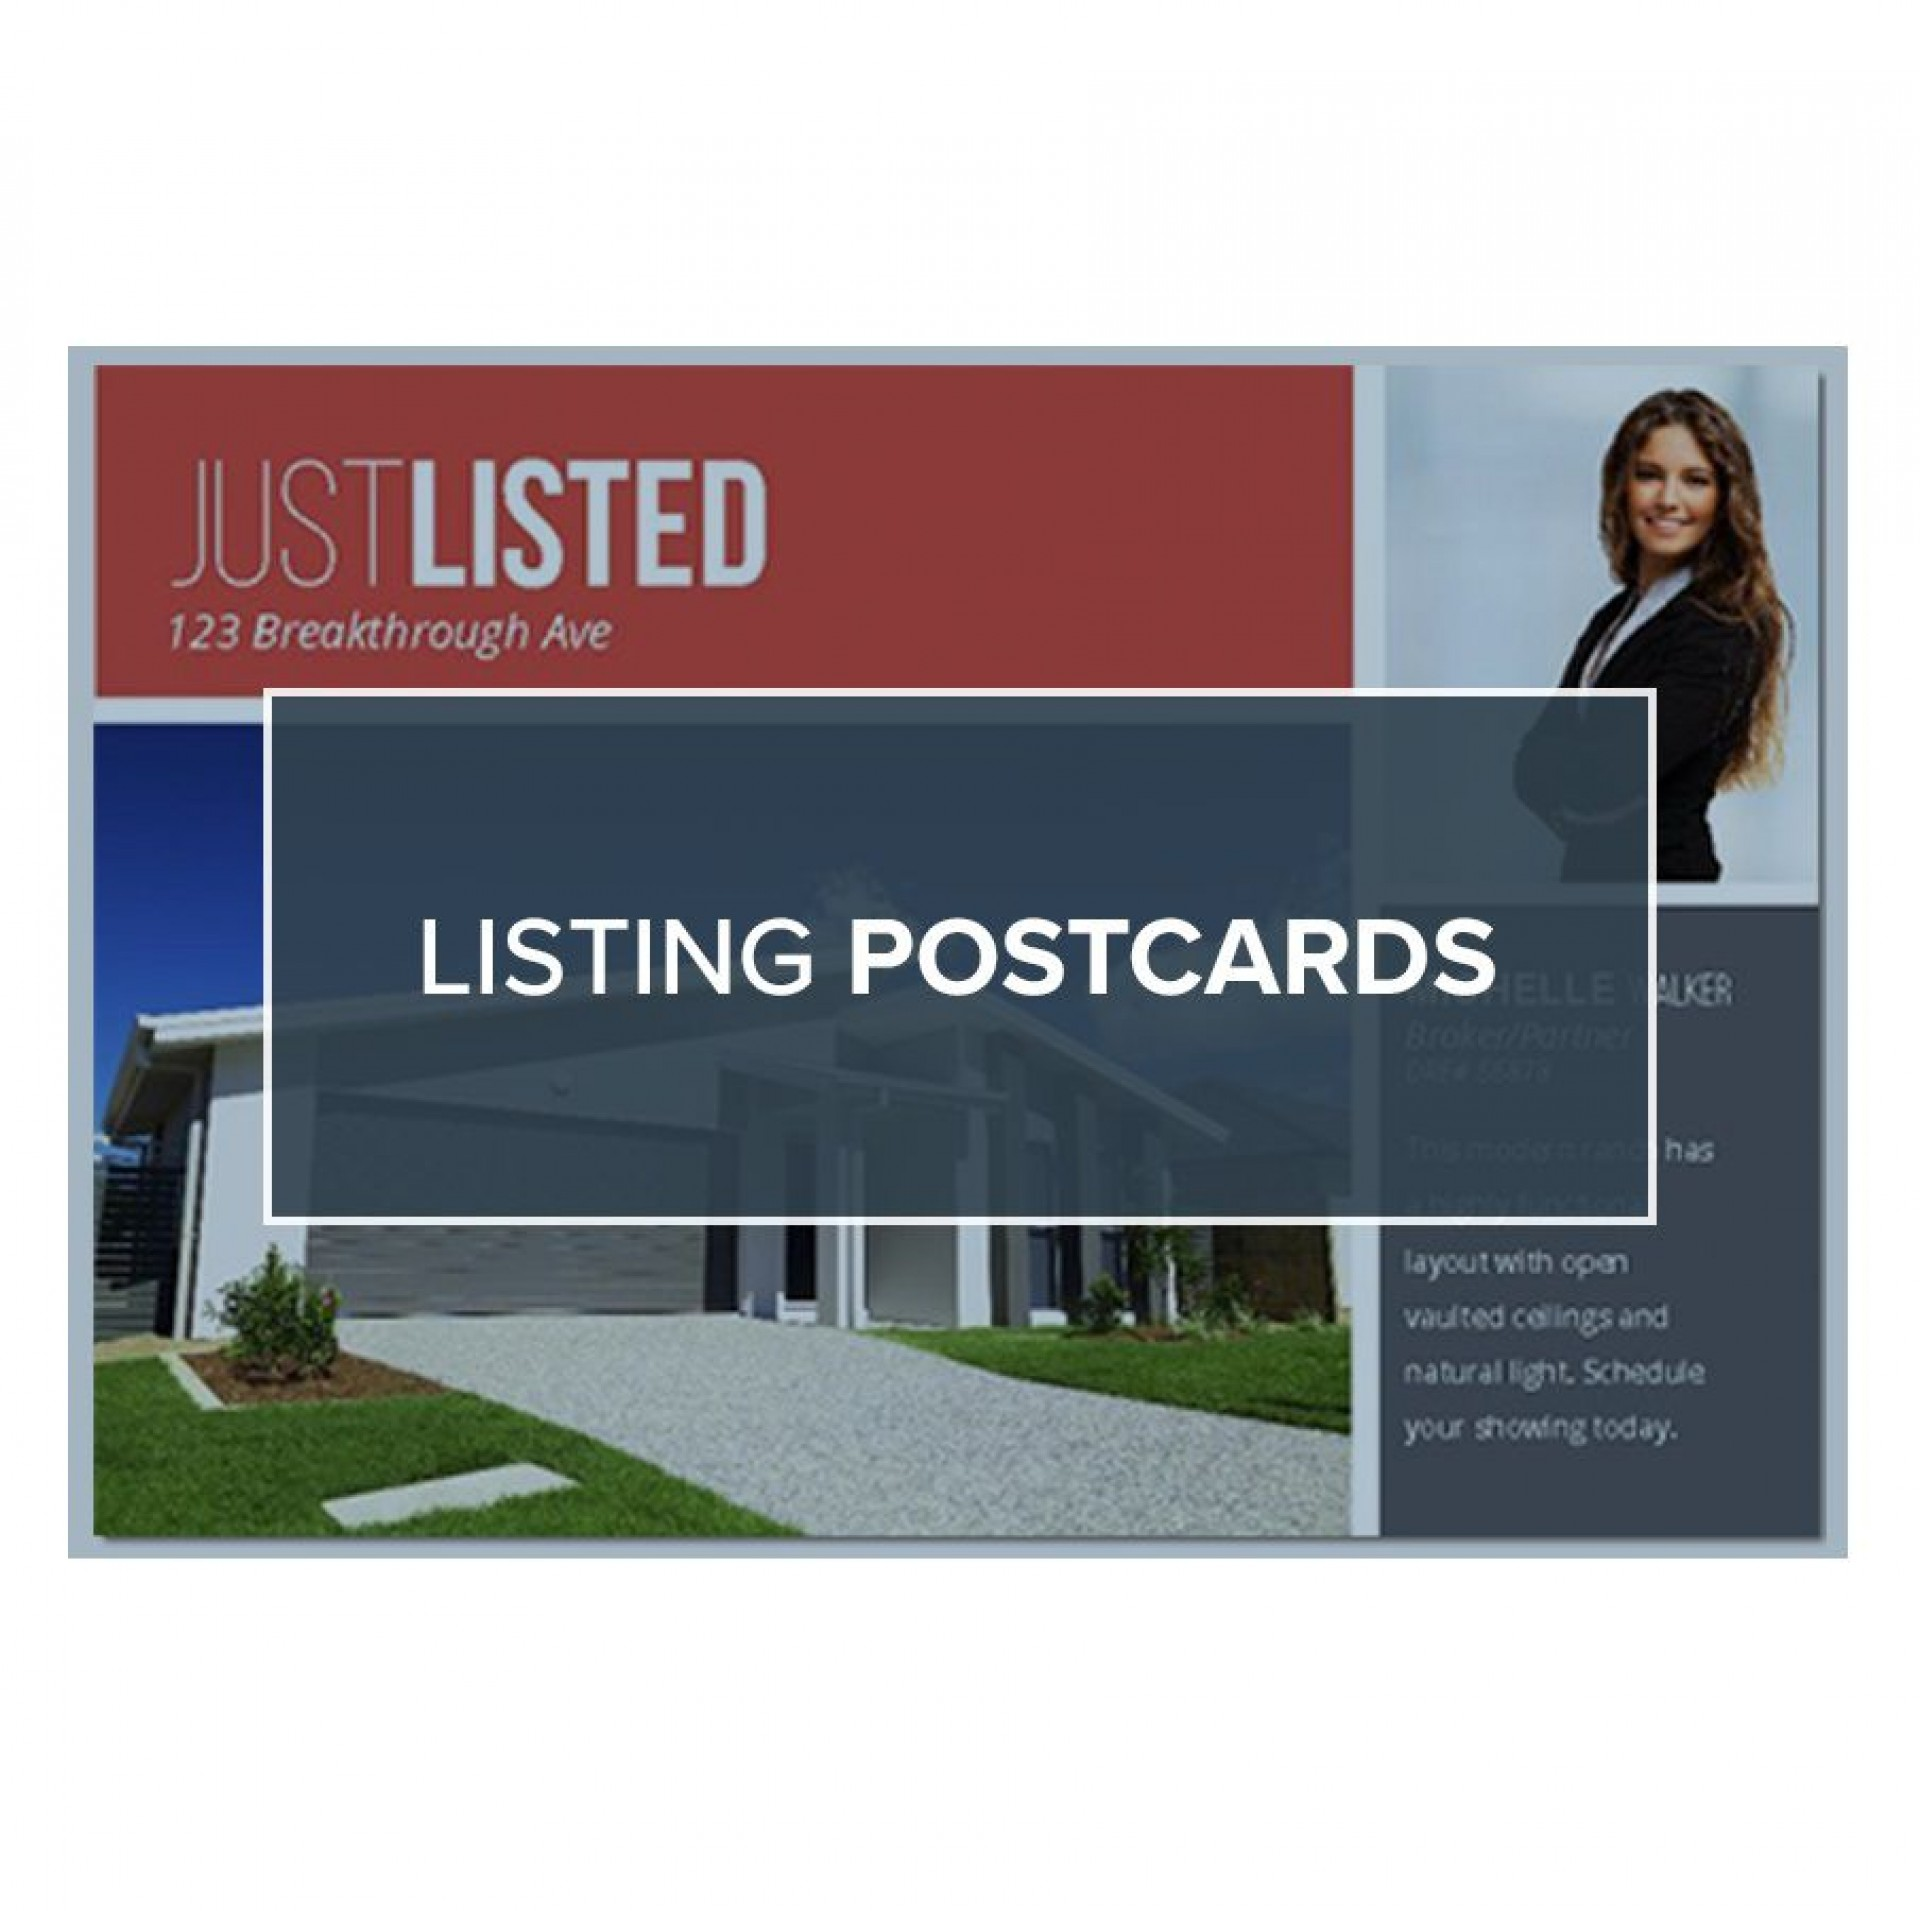 006 Formidable Real Estate Postcard Template Photo  Agent For Photoshop Investor1920